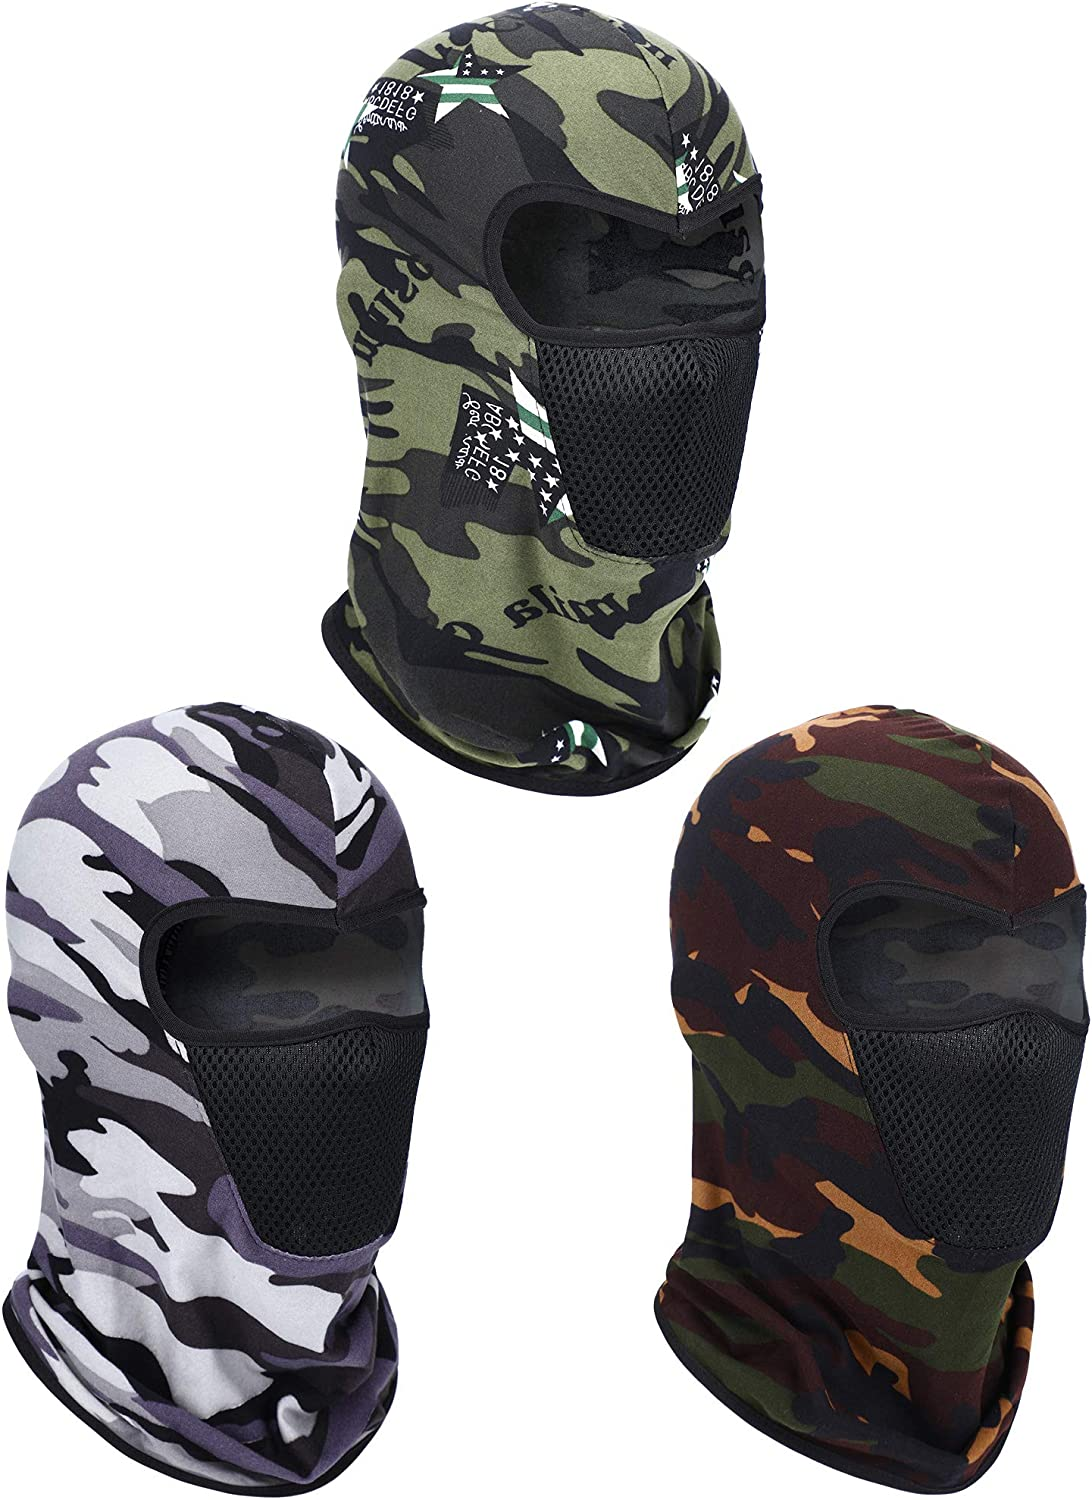 3 Pieces Summer Balaclava Face Cover Breathable Full Face Cover Windproof Full Face Cover for Outdoor Activities Favors(Camouflage)